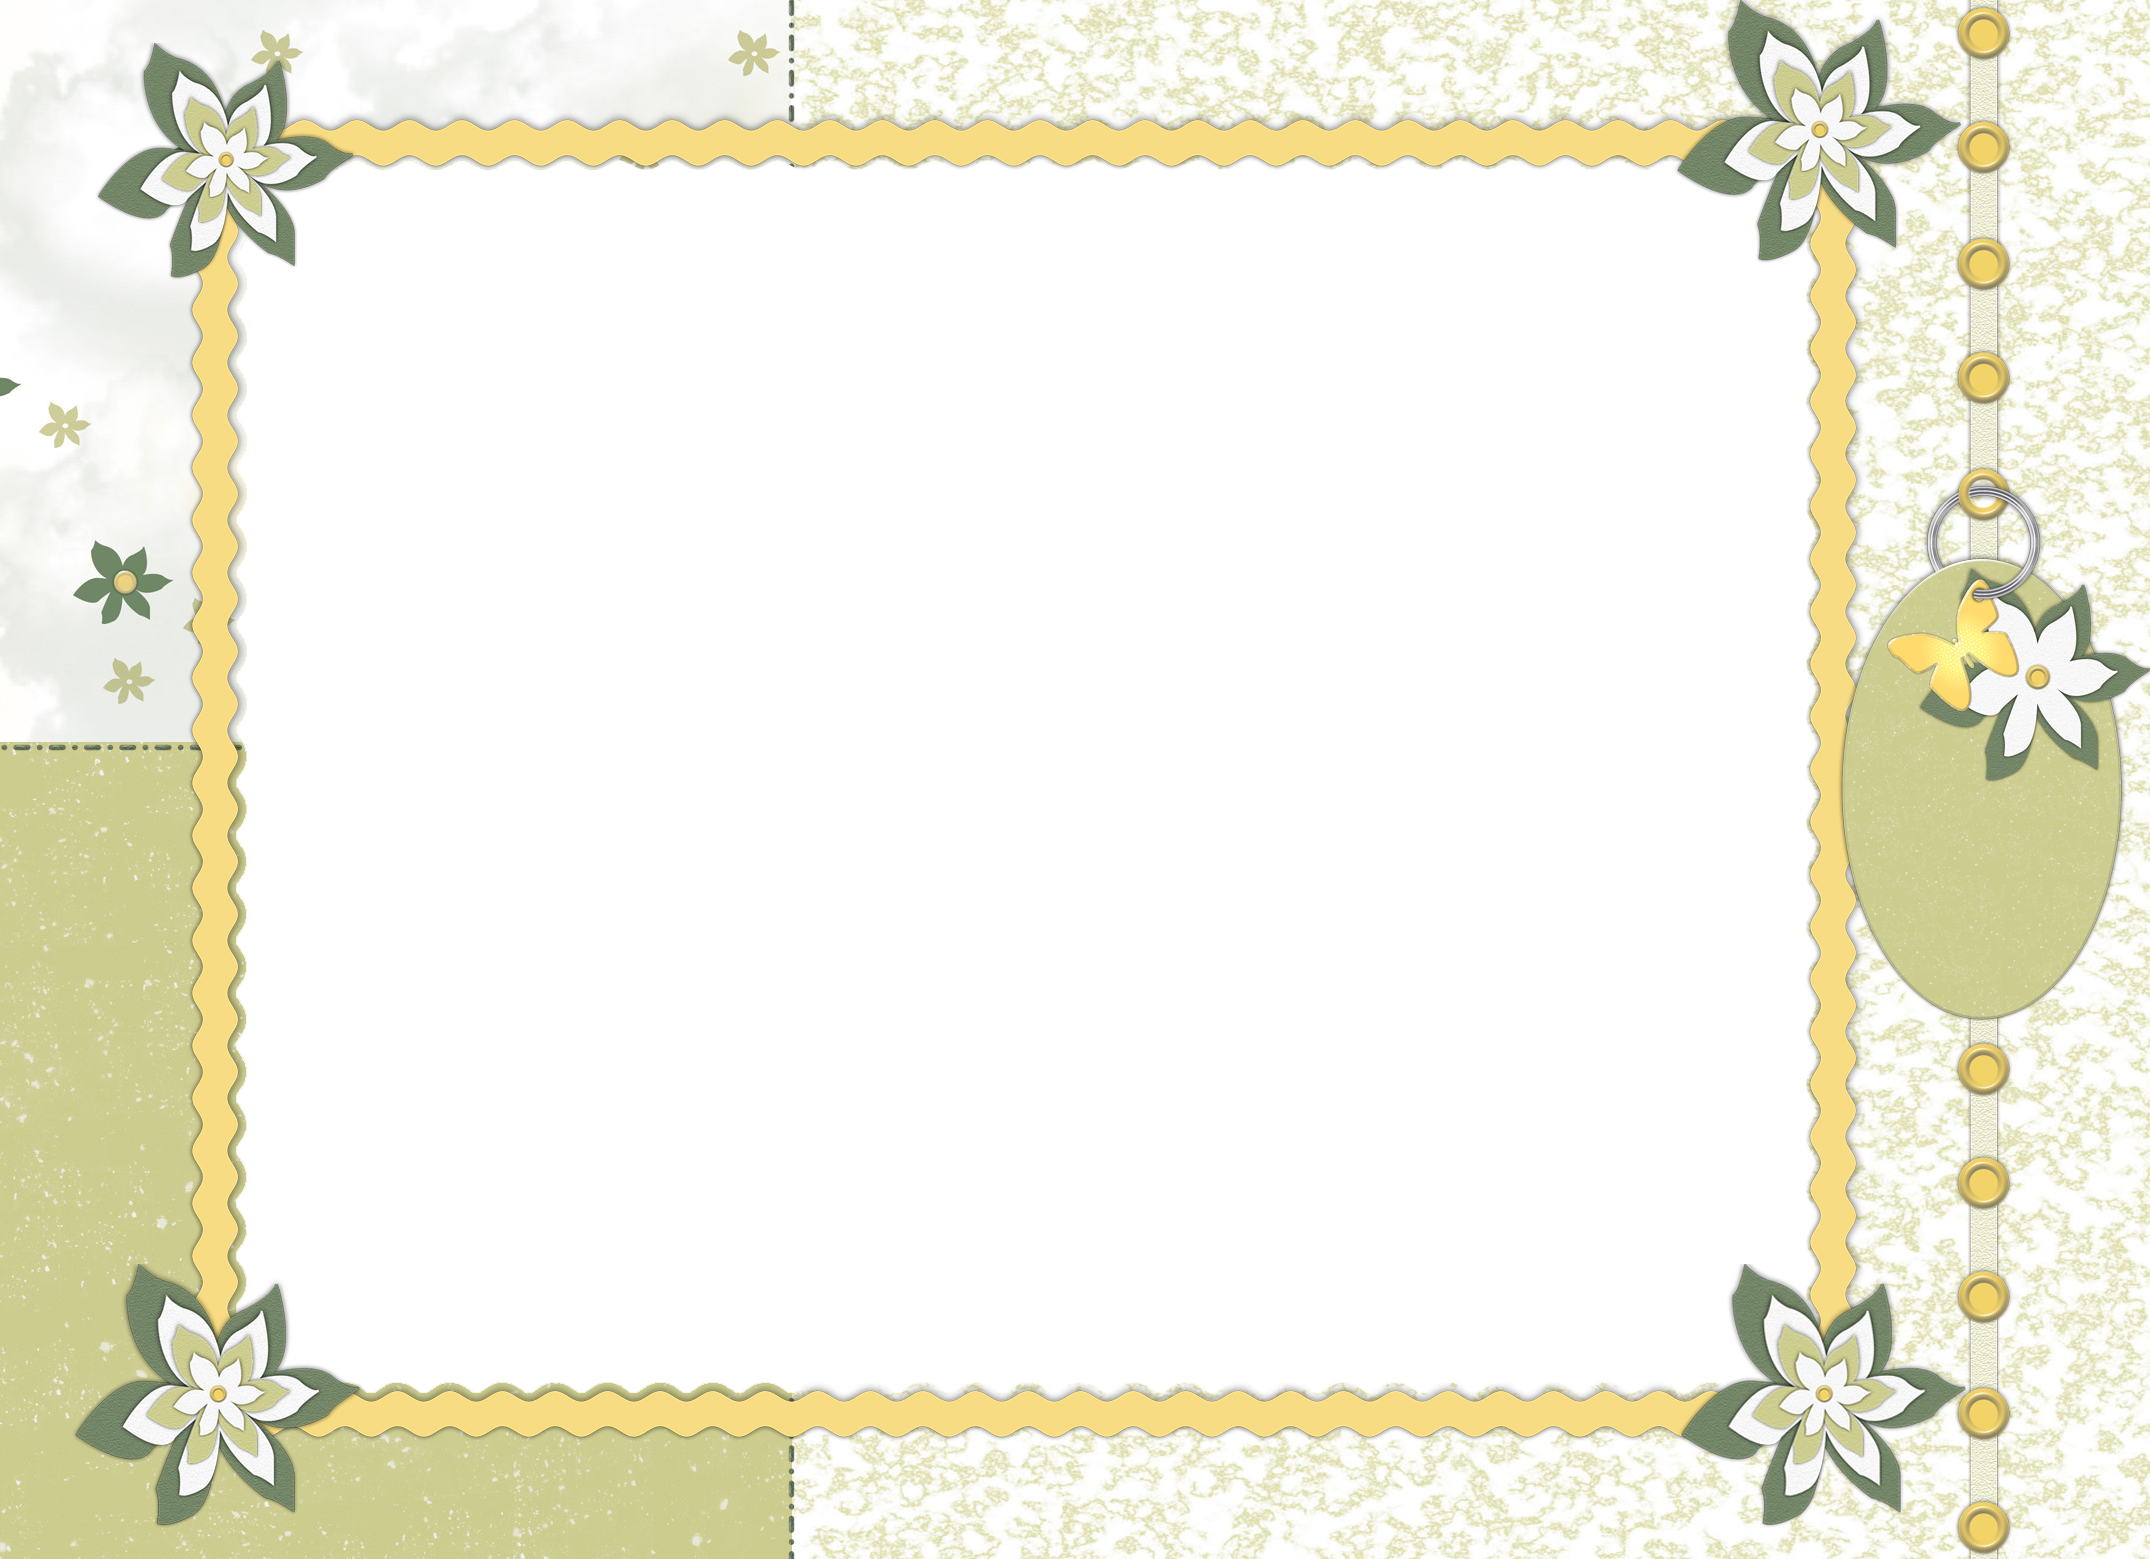 12 photoshop borders and frames collage images photo for Picture frame templates for photoshop